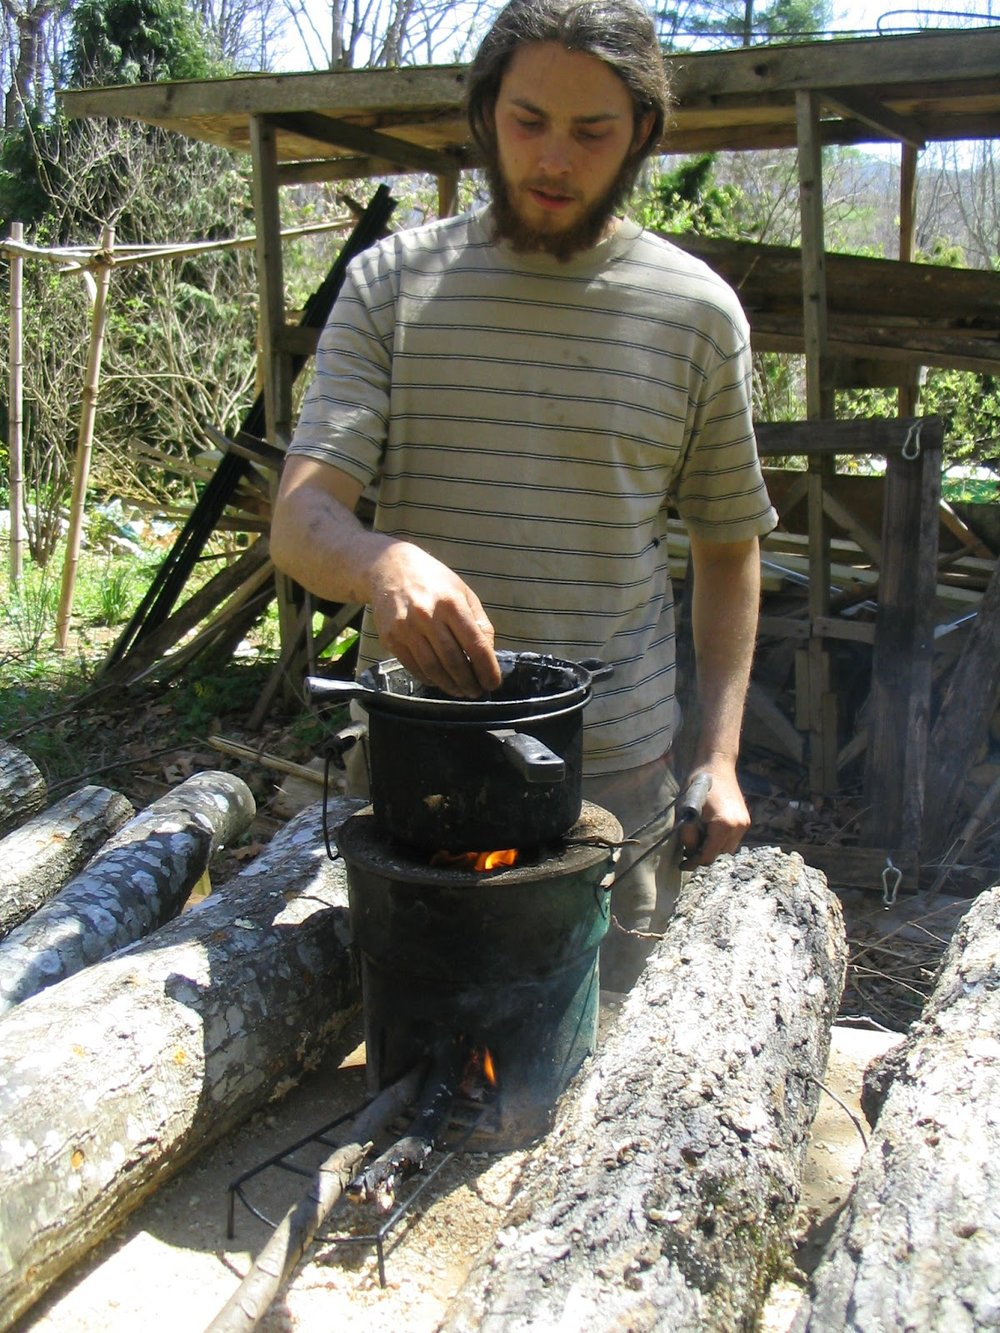 Ryan melts wax on the Rocket Stove to apply to the log.